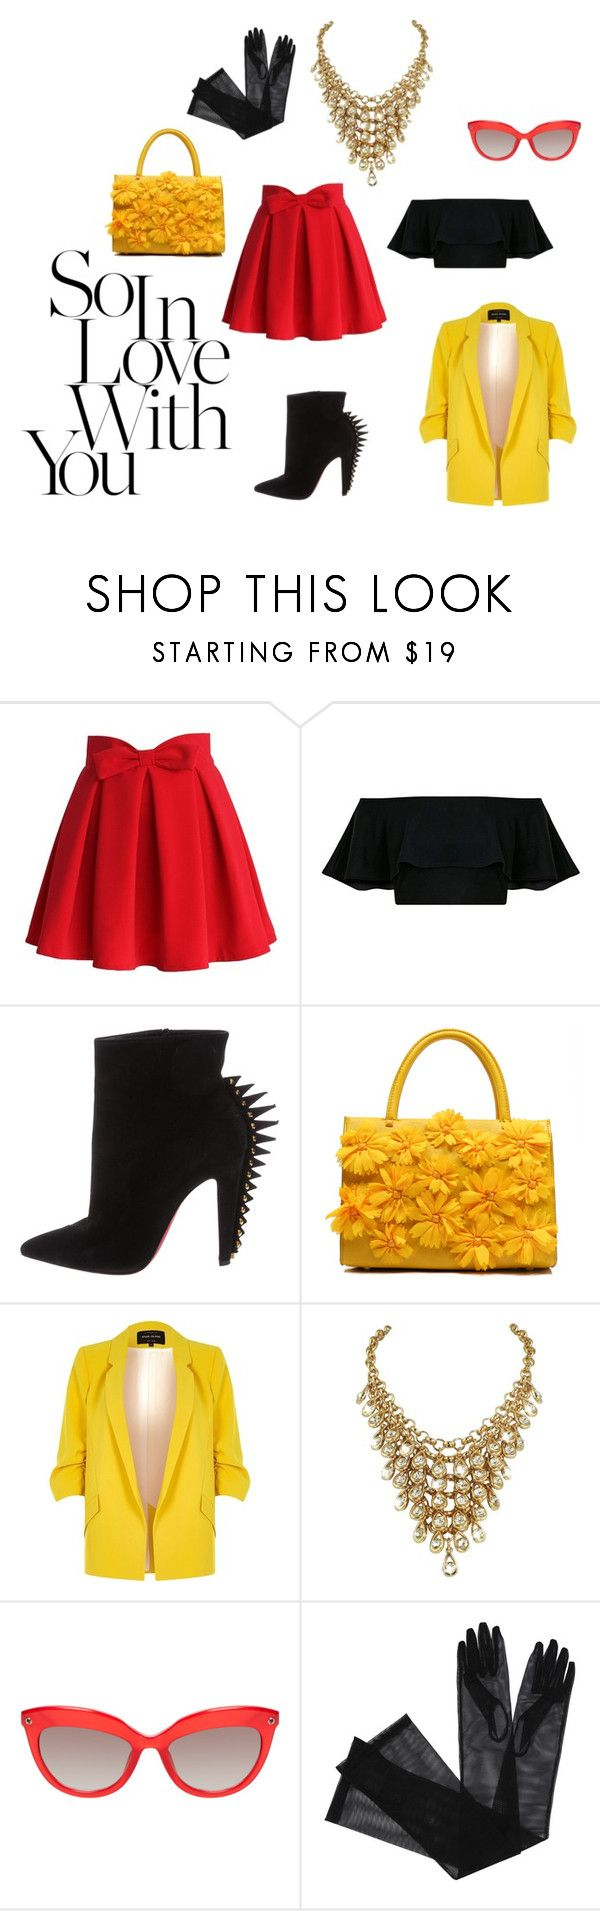 So in Love with you featuring River Island, Chicwish, Christian Louboutin and Gucci